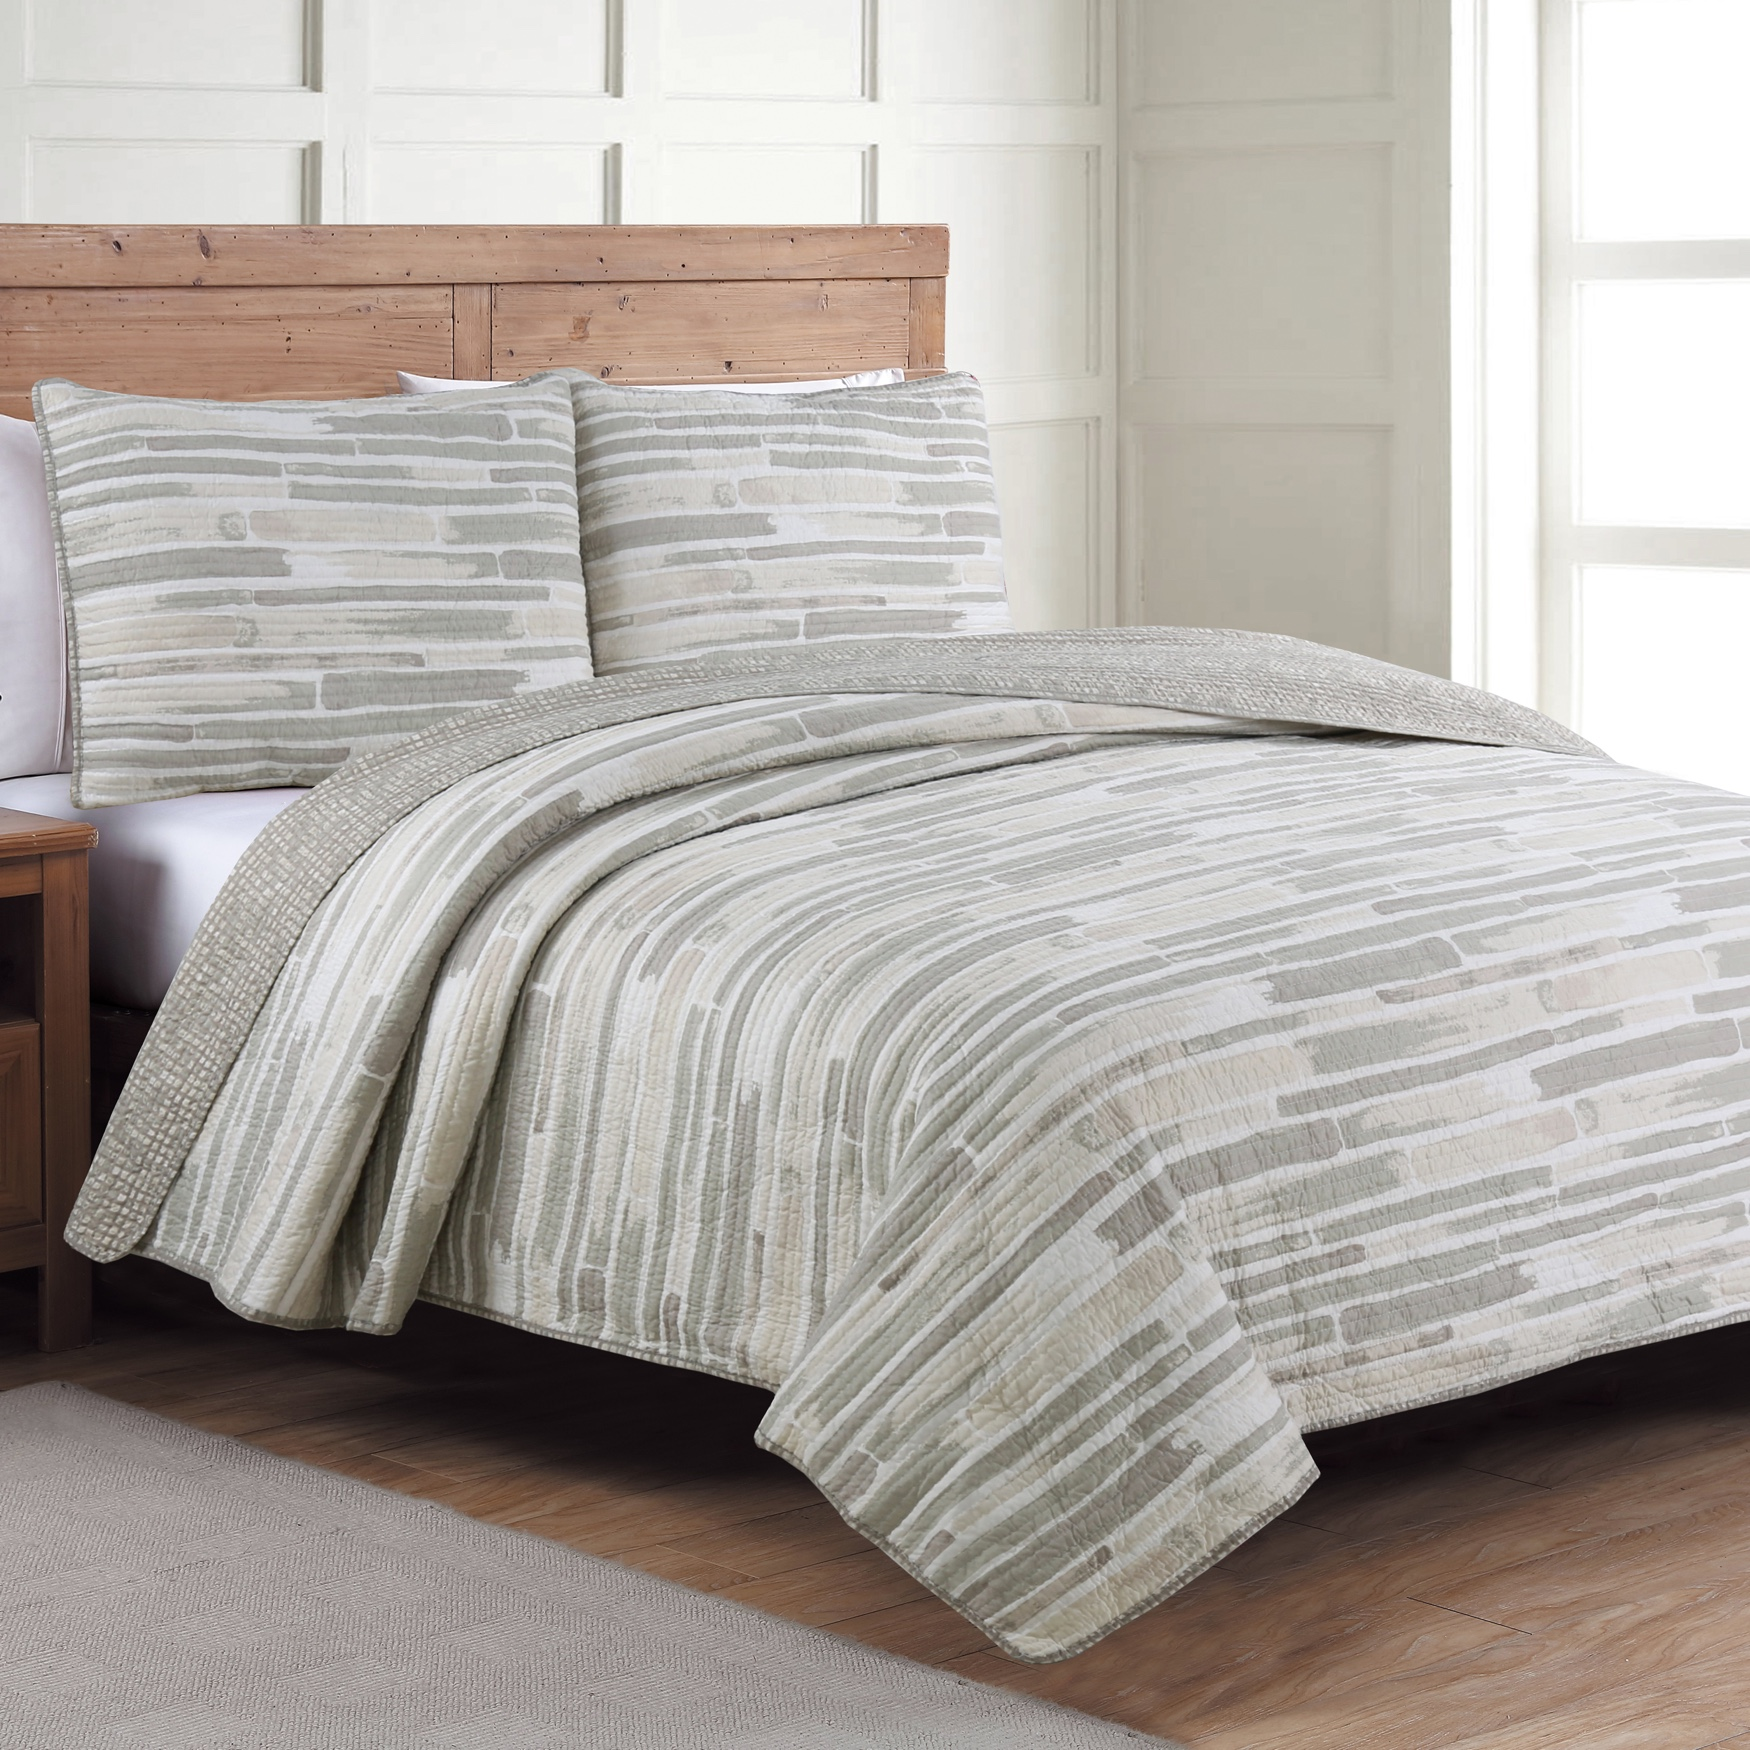 Algarve Quilt Set,